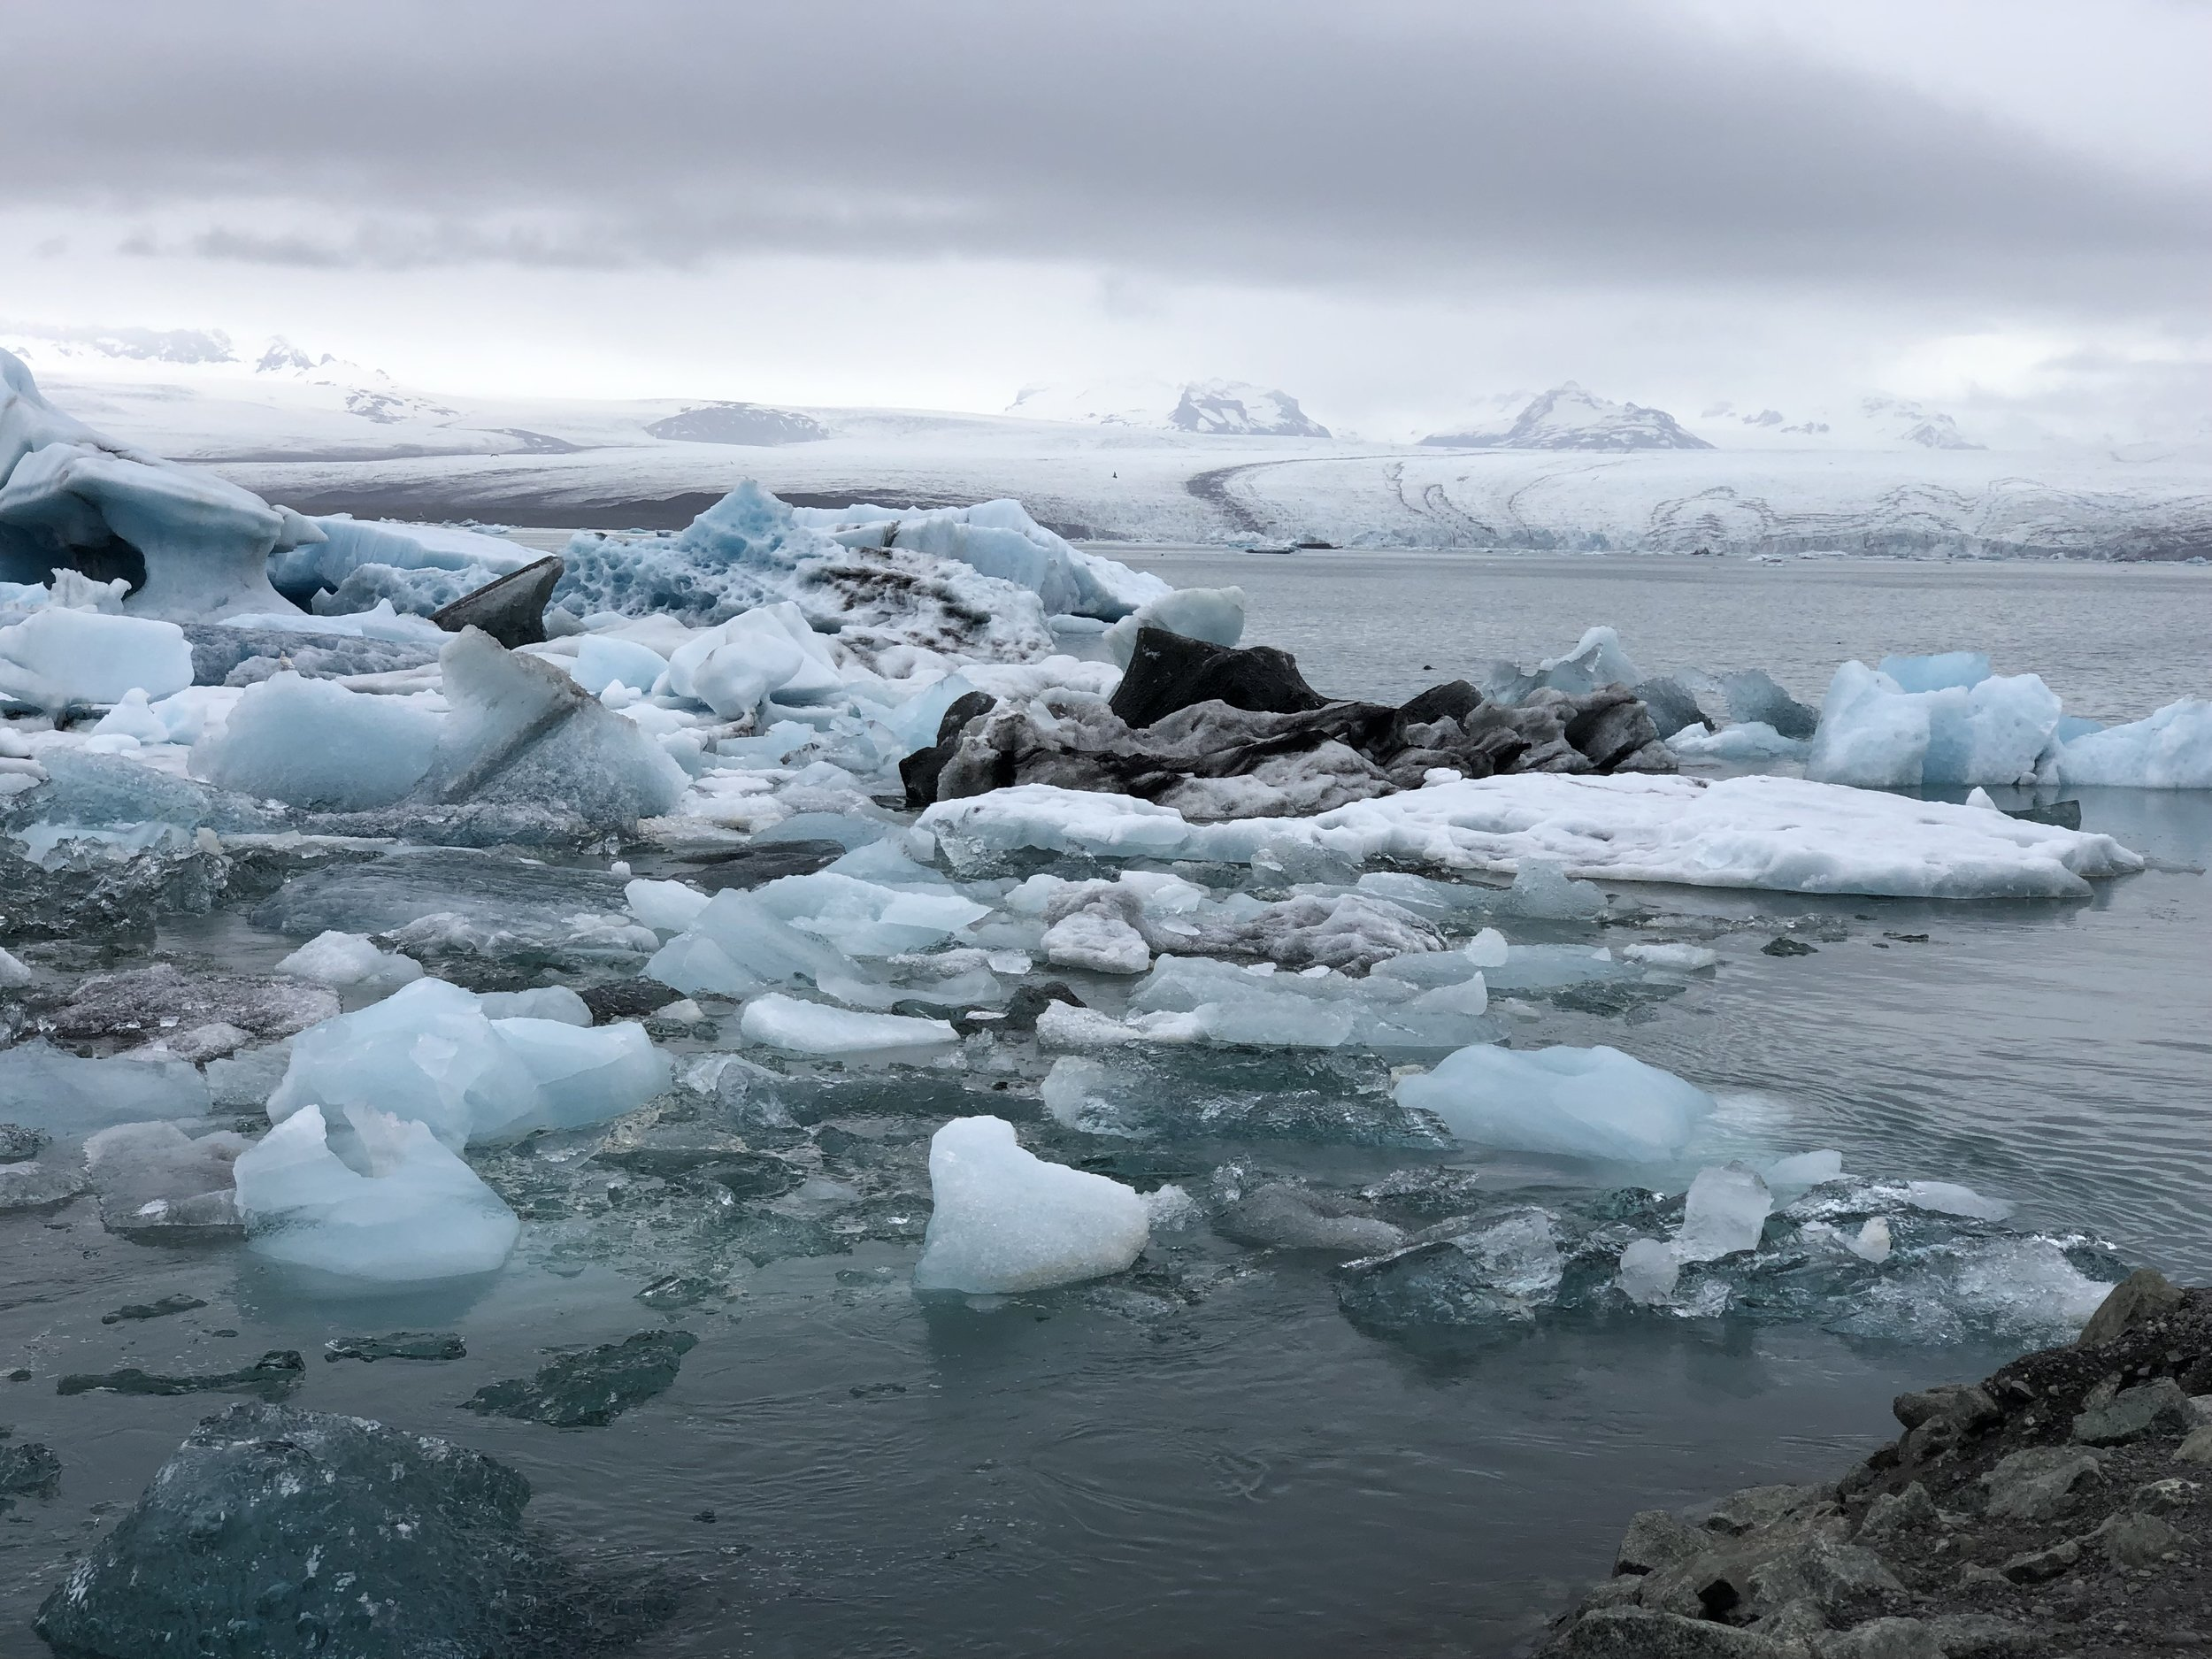 Icebergs floating in a glacial lake.